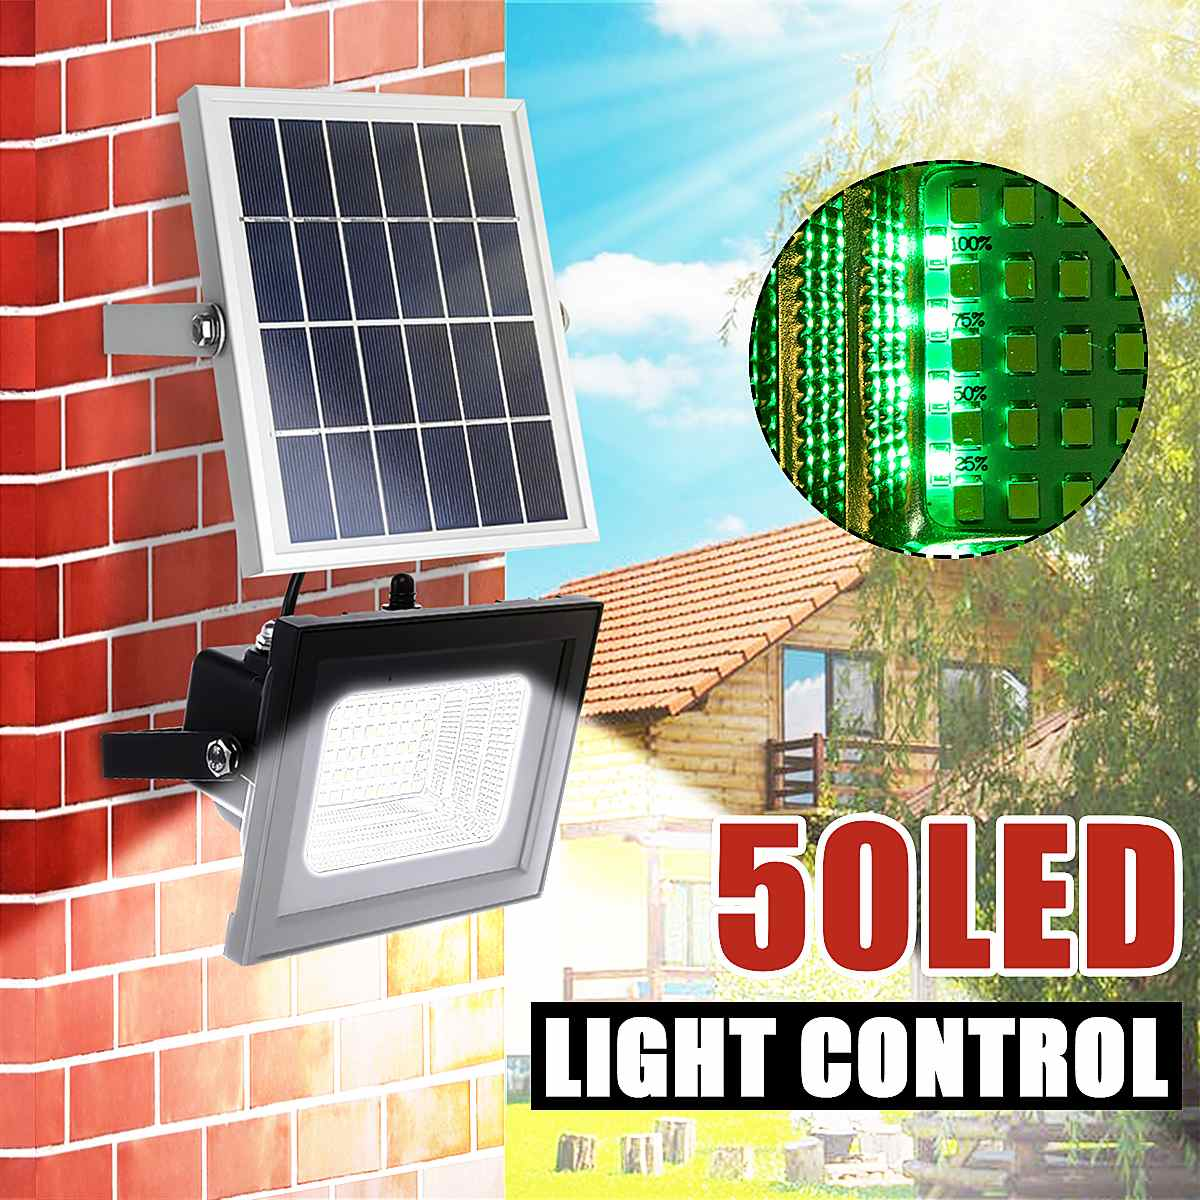 Solar Powered Flood Lights 25W 50leds Outdoor Lawn Landscape Lamps Waterproof Wall Lamps Floodlight +Remote Control With Blacket